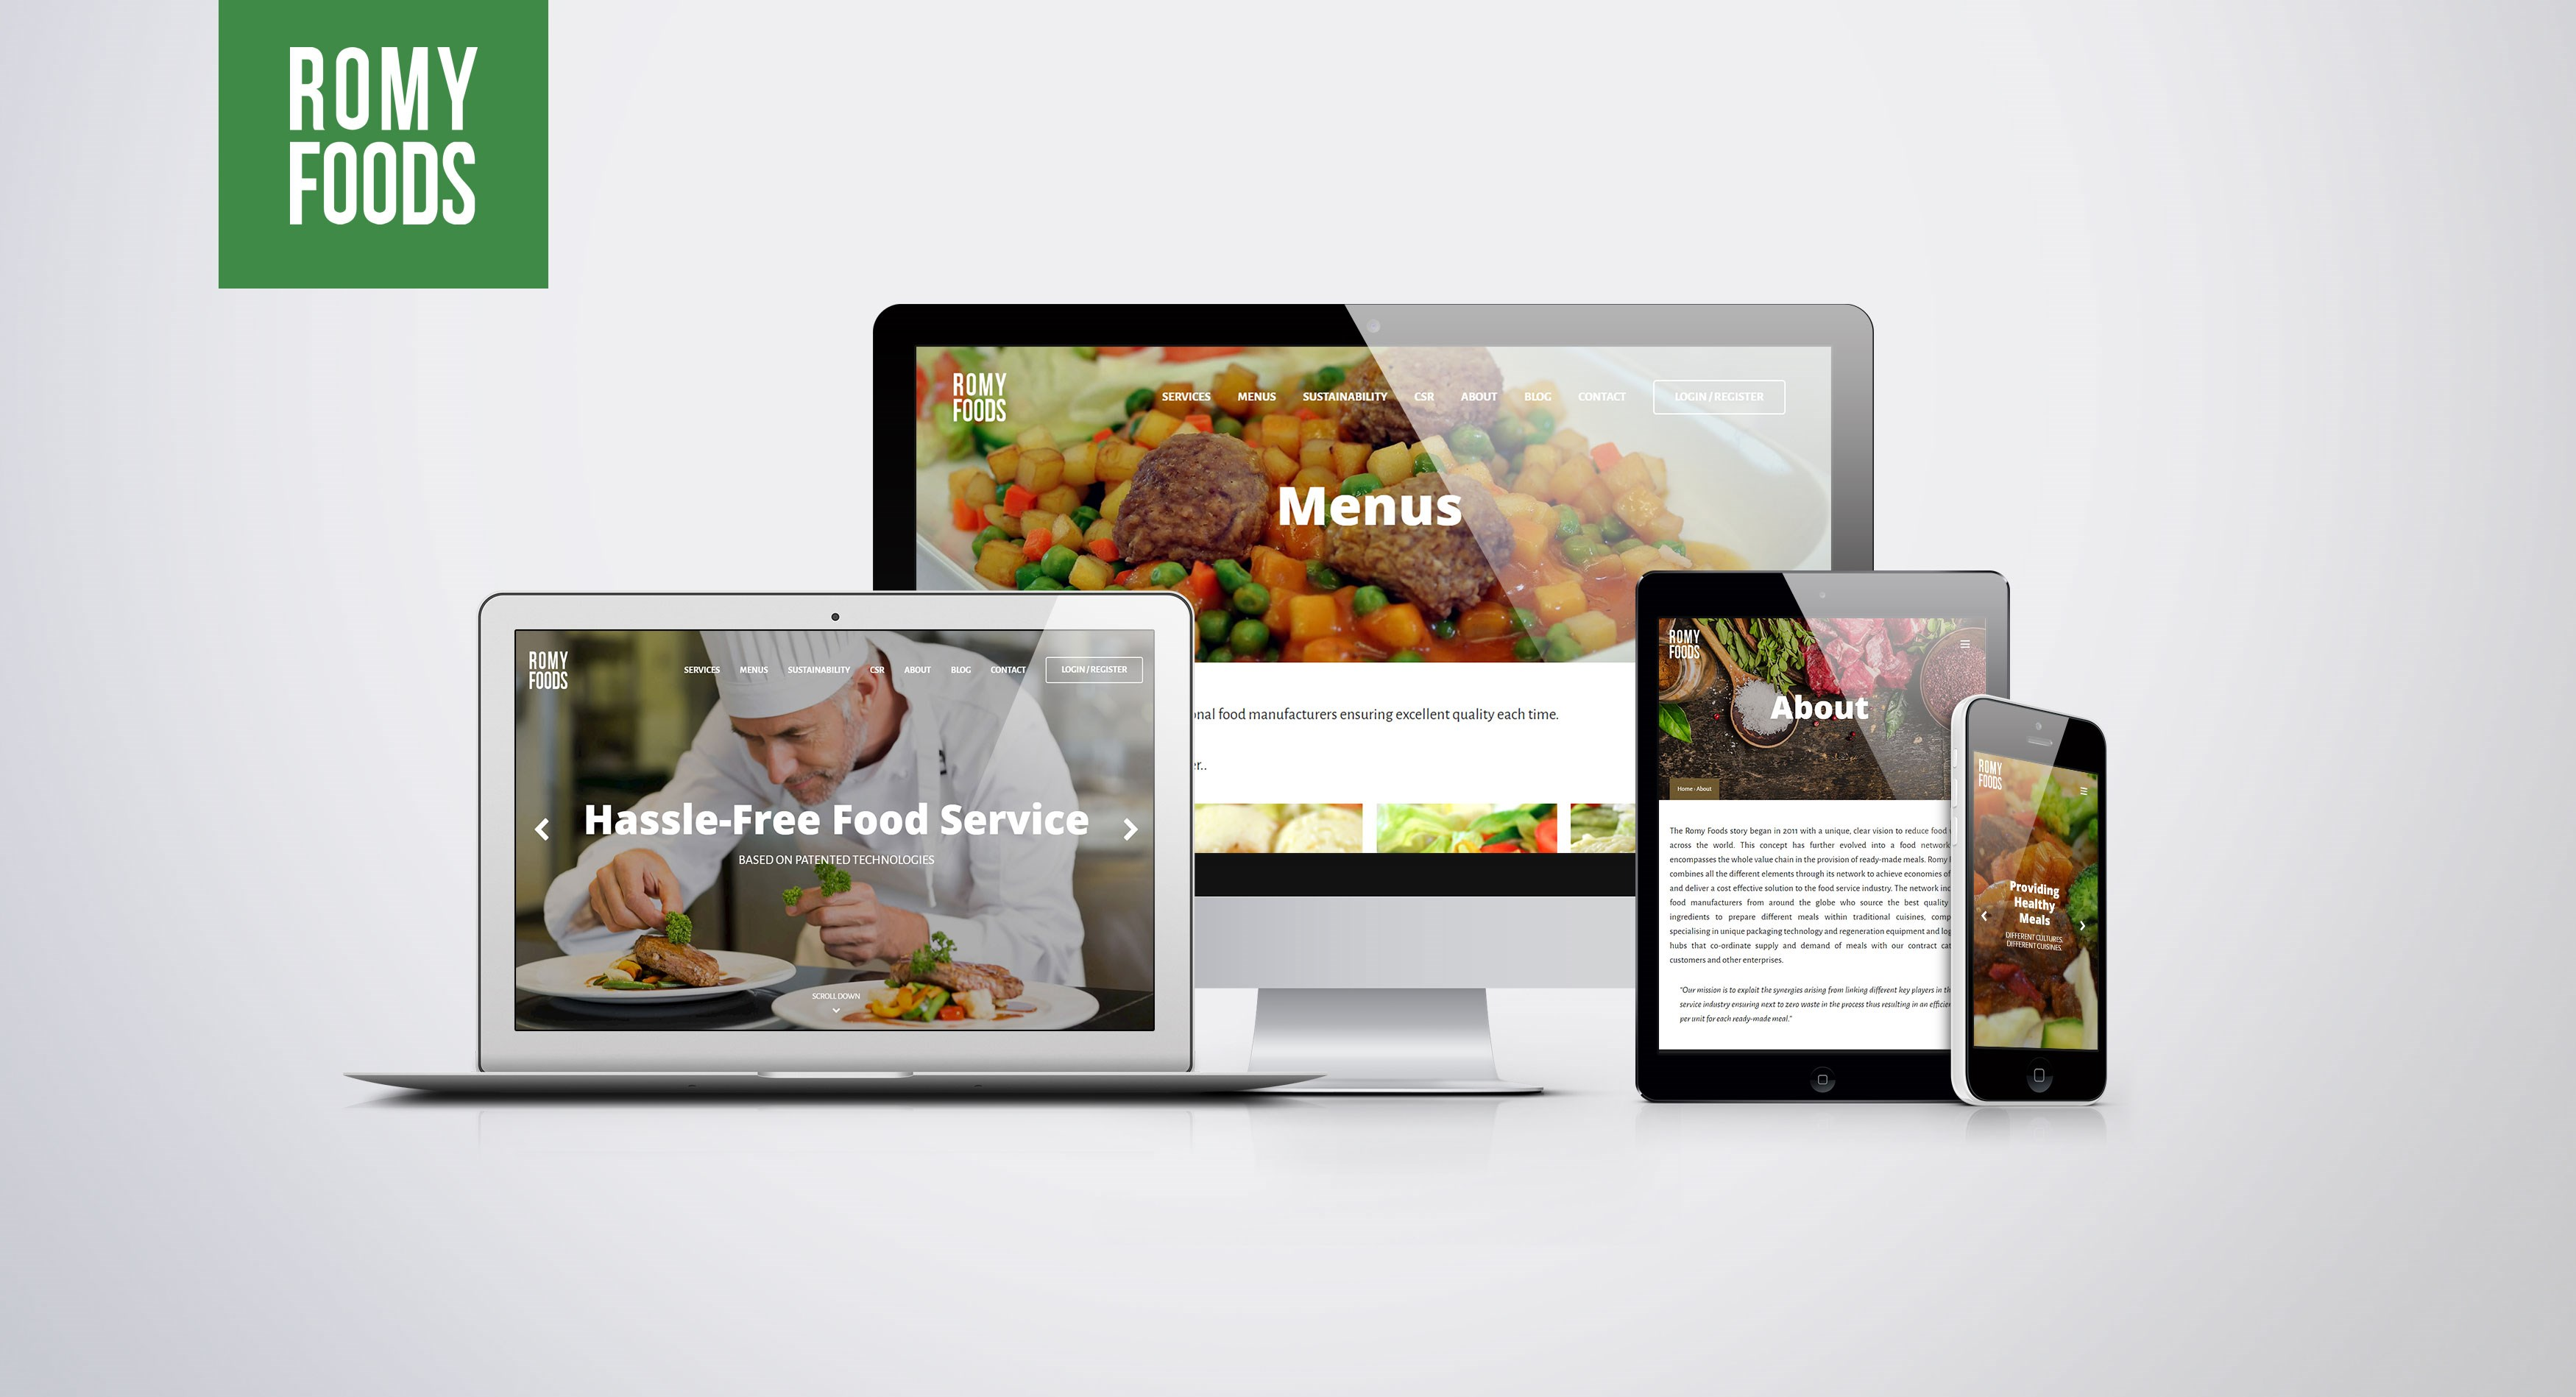 Romy Foods Concept Sites - Support & Maintenance / Web Hosting & Domain Names / Web Design & Development